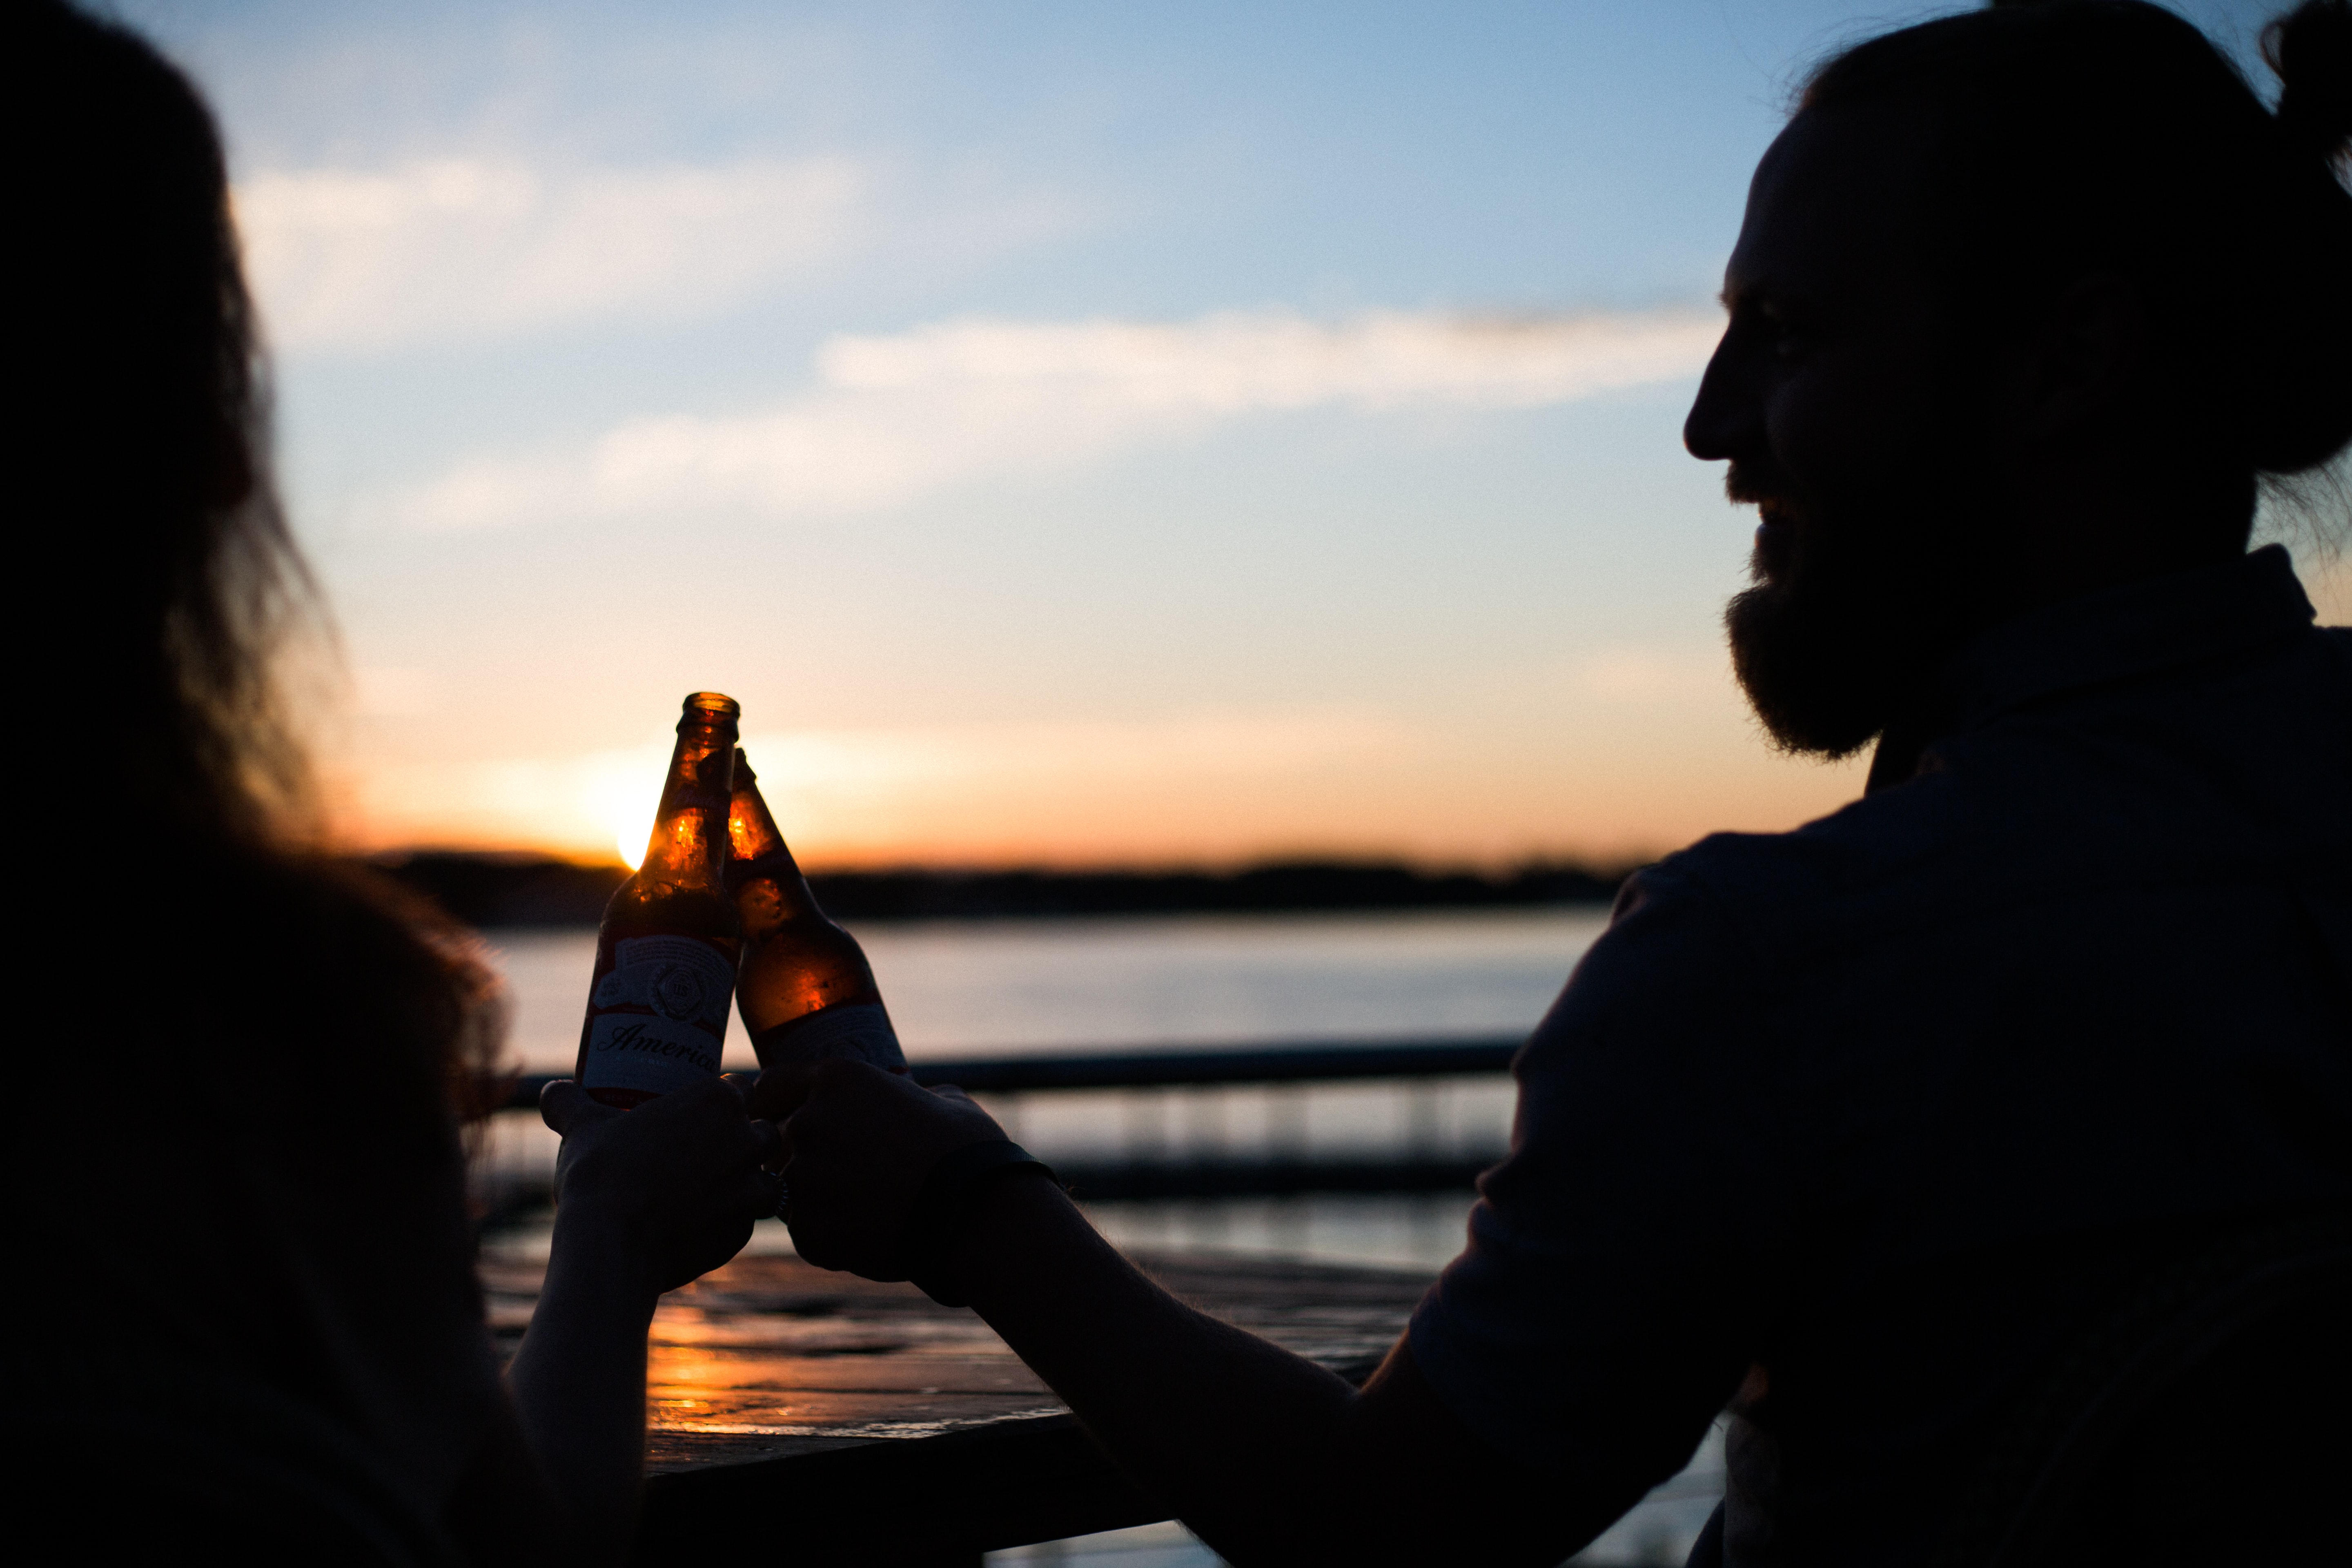 silhouette photography of man and woman carrying beer bottles